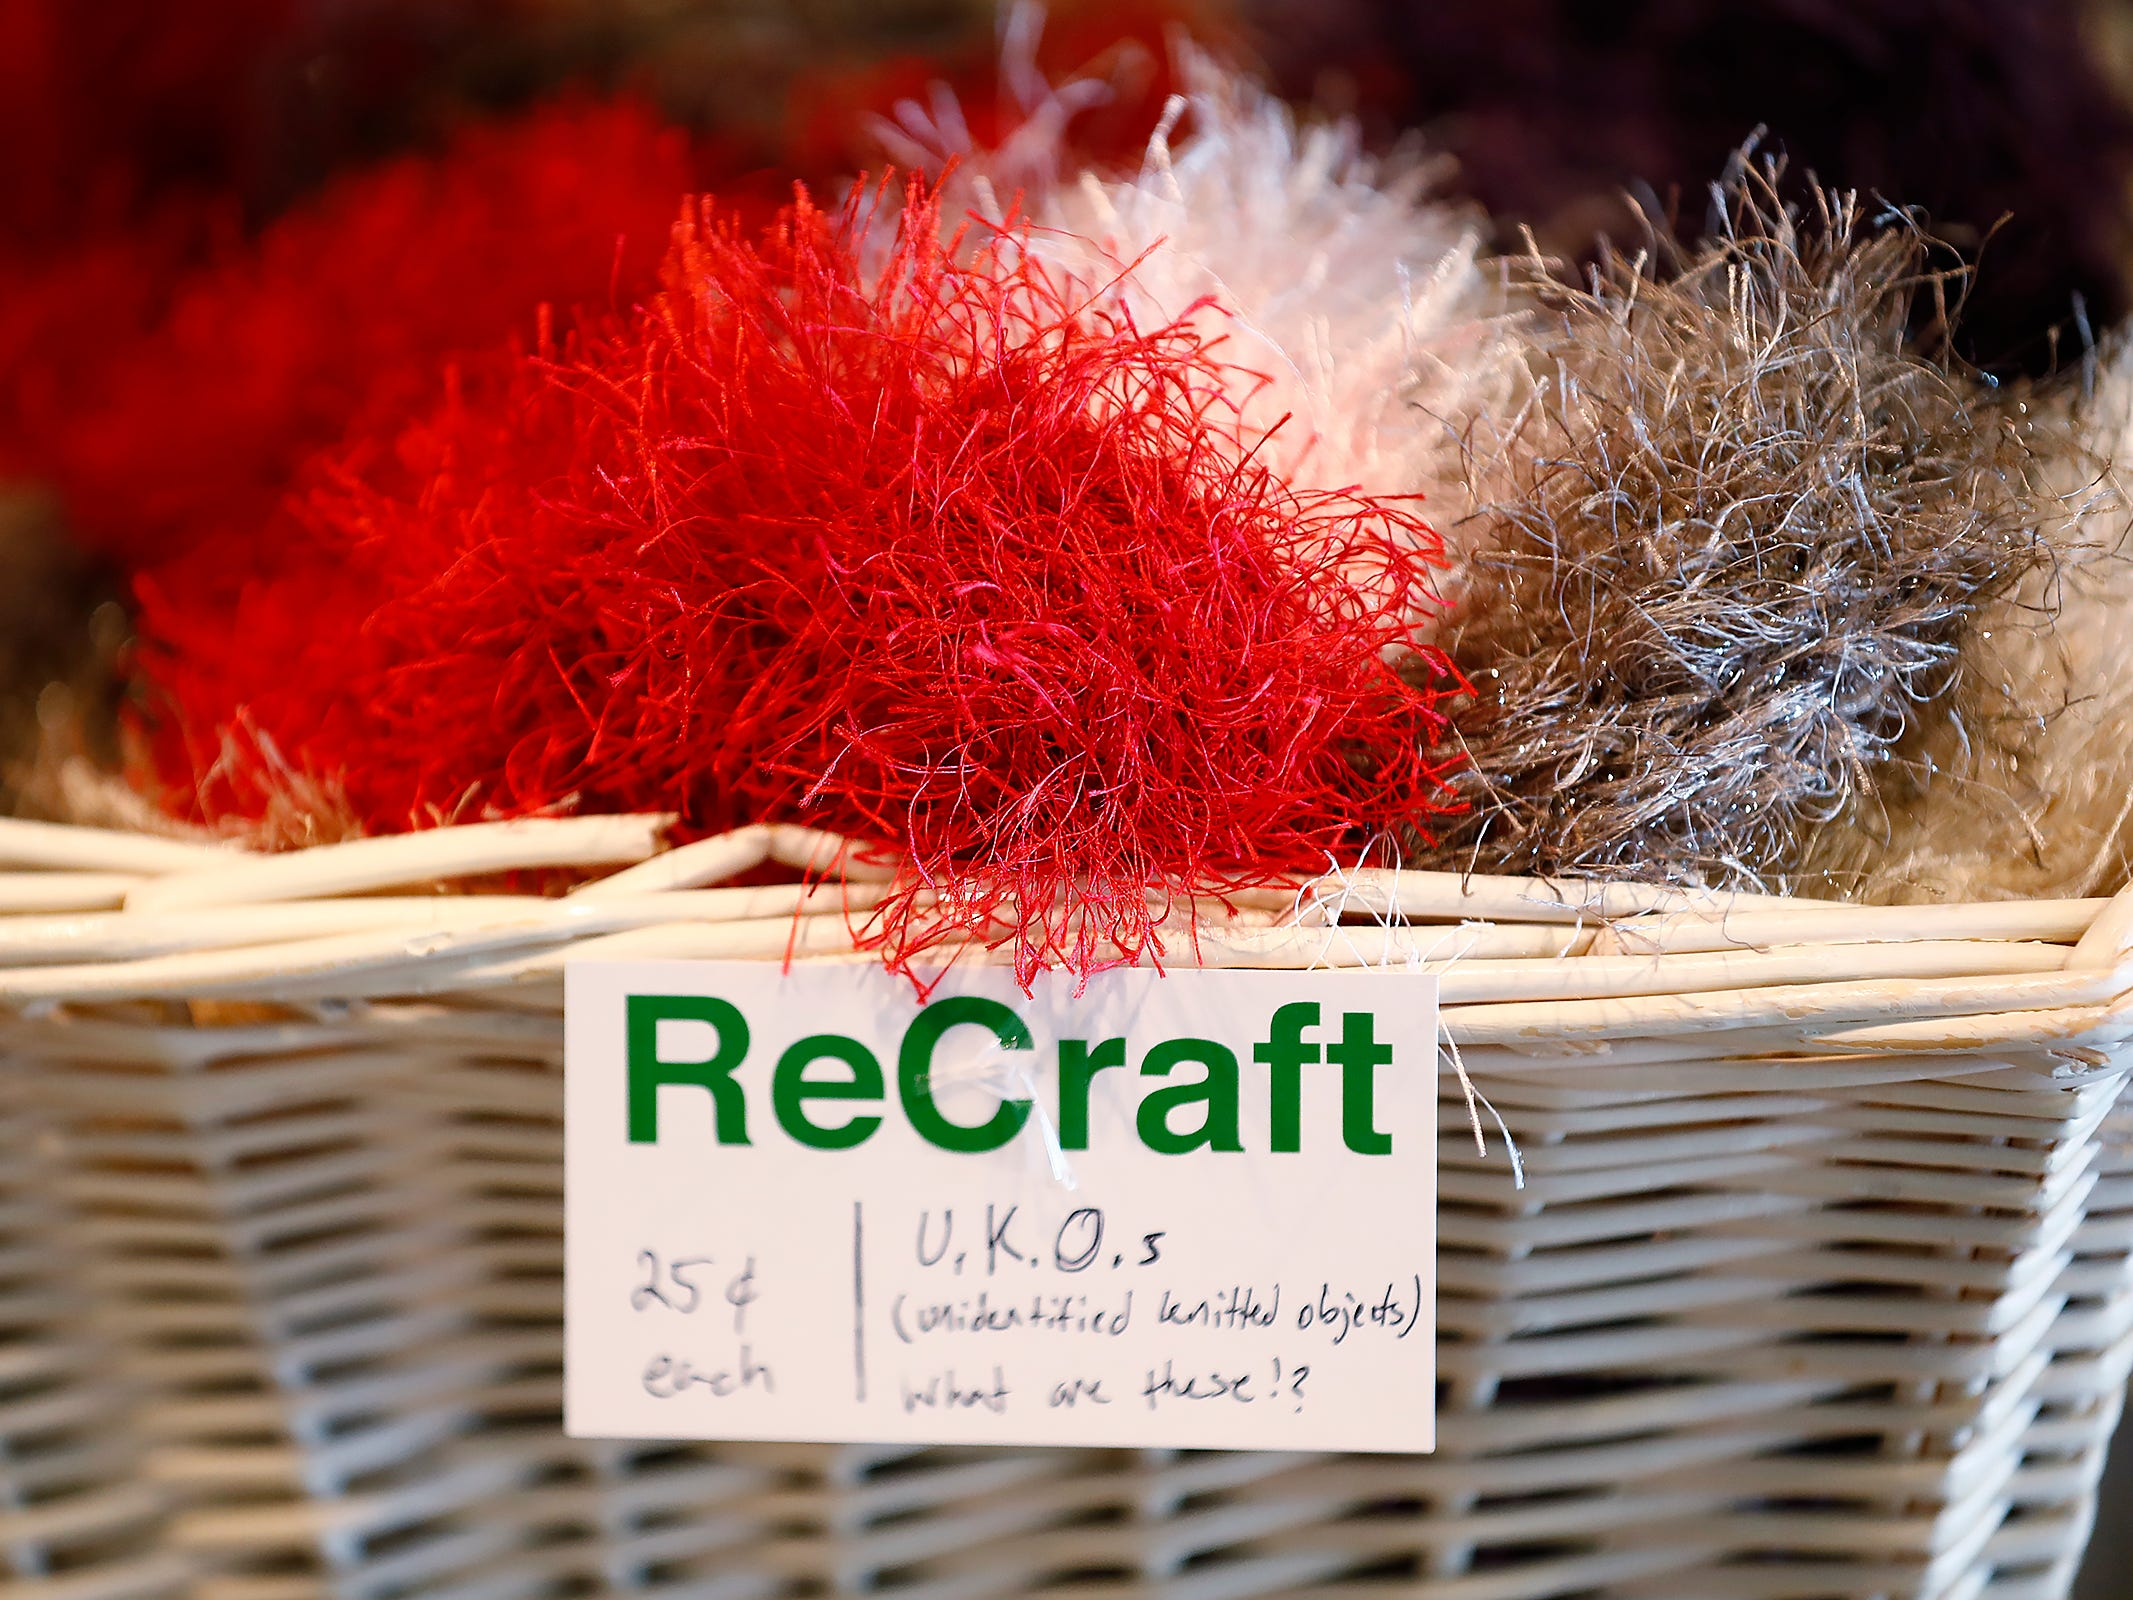 A basket of unknown knitted objects are seen for sale at ReCraft, Tuesday, Dec. 11, 2018.  Many of the store's items are donated or ready for re-use. ReCraft was born out of Bethany Daugherty's love of crafting and her interest in environmental activism.  At the secondhand craft and hobby store, Daugherty also teaches workshops.  Sustainability and environmentalism are the focus of the store.